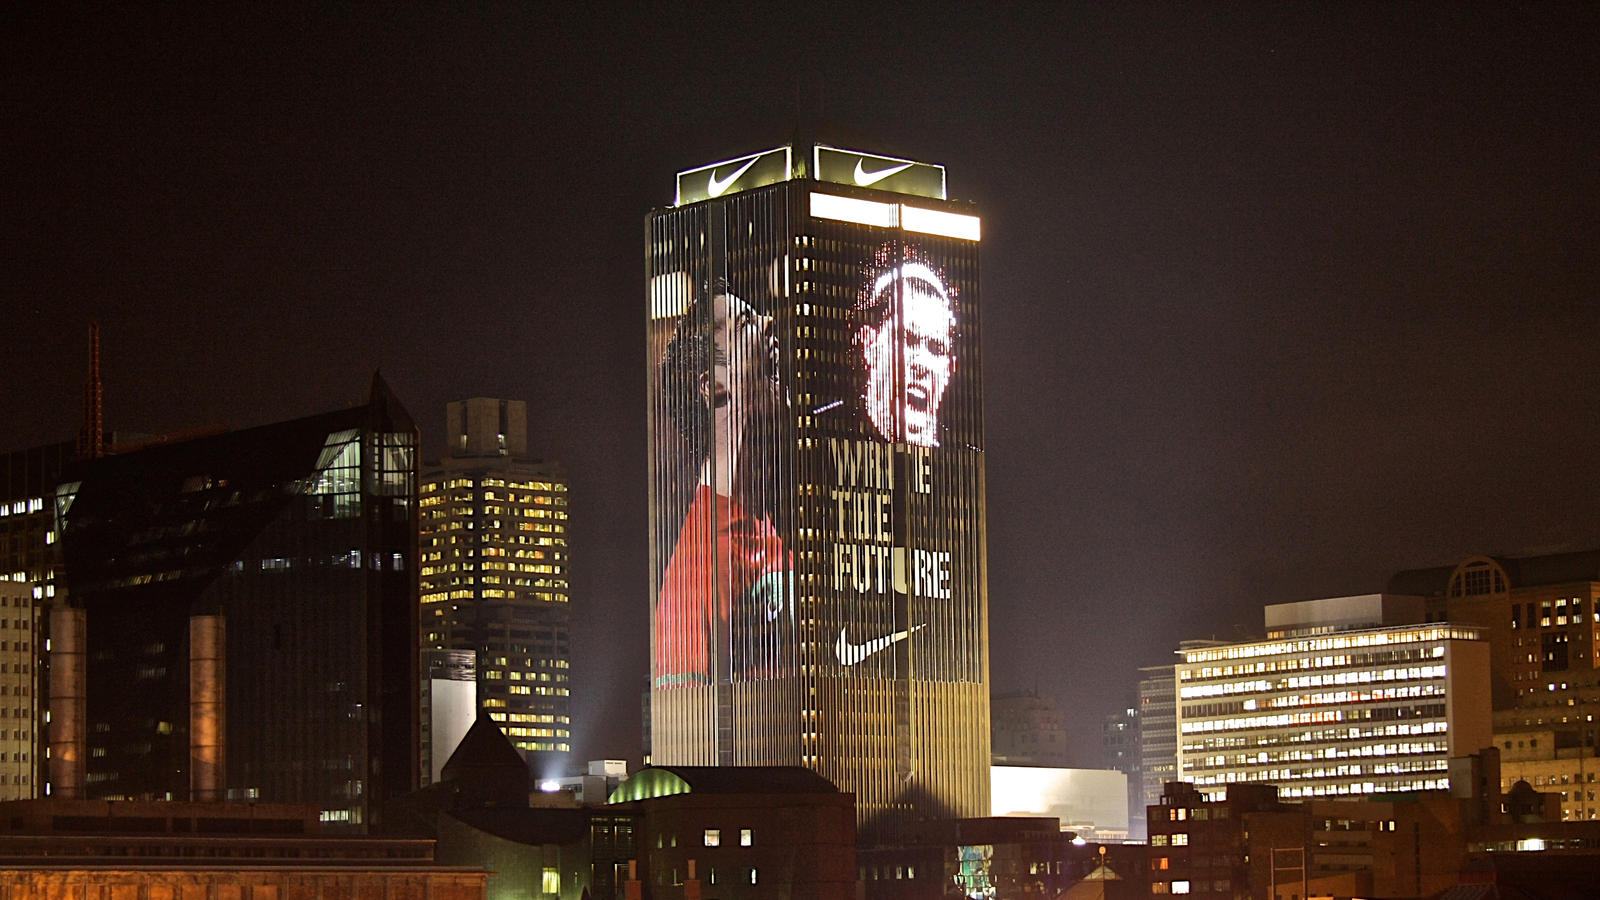 Write the headline light up johannesburg nike news johannesburg june 21 2010 towering high above downtown johannesburg stands one of the citys most iconic buildings the life center thecheapjerseys Gallery